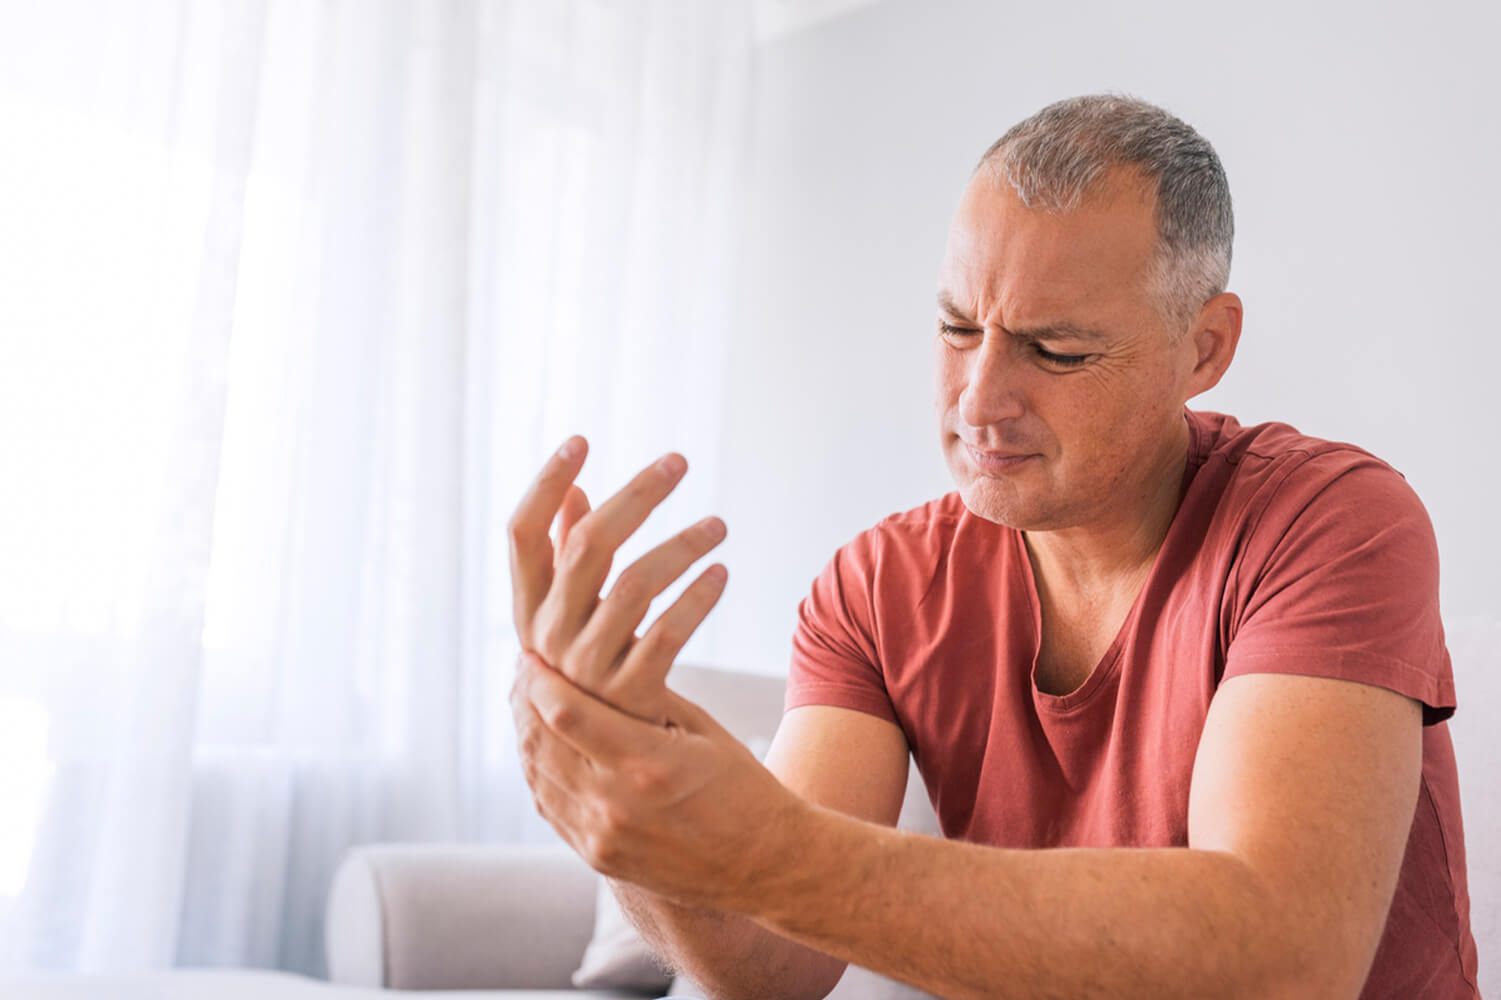 peripheral neuropathy - radiculopathy - radiculopathy treatment - Southern Regional Pain Services - pain management near me - pain management doctor Little Rock, AR - pain management physician Little Rock, AR - chronic pain treatment near me - neck pain treatment near me - back pain treatment near me